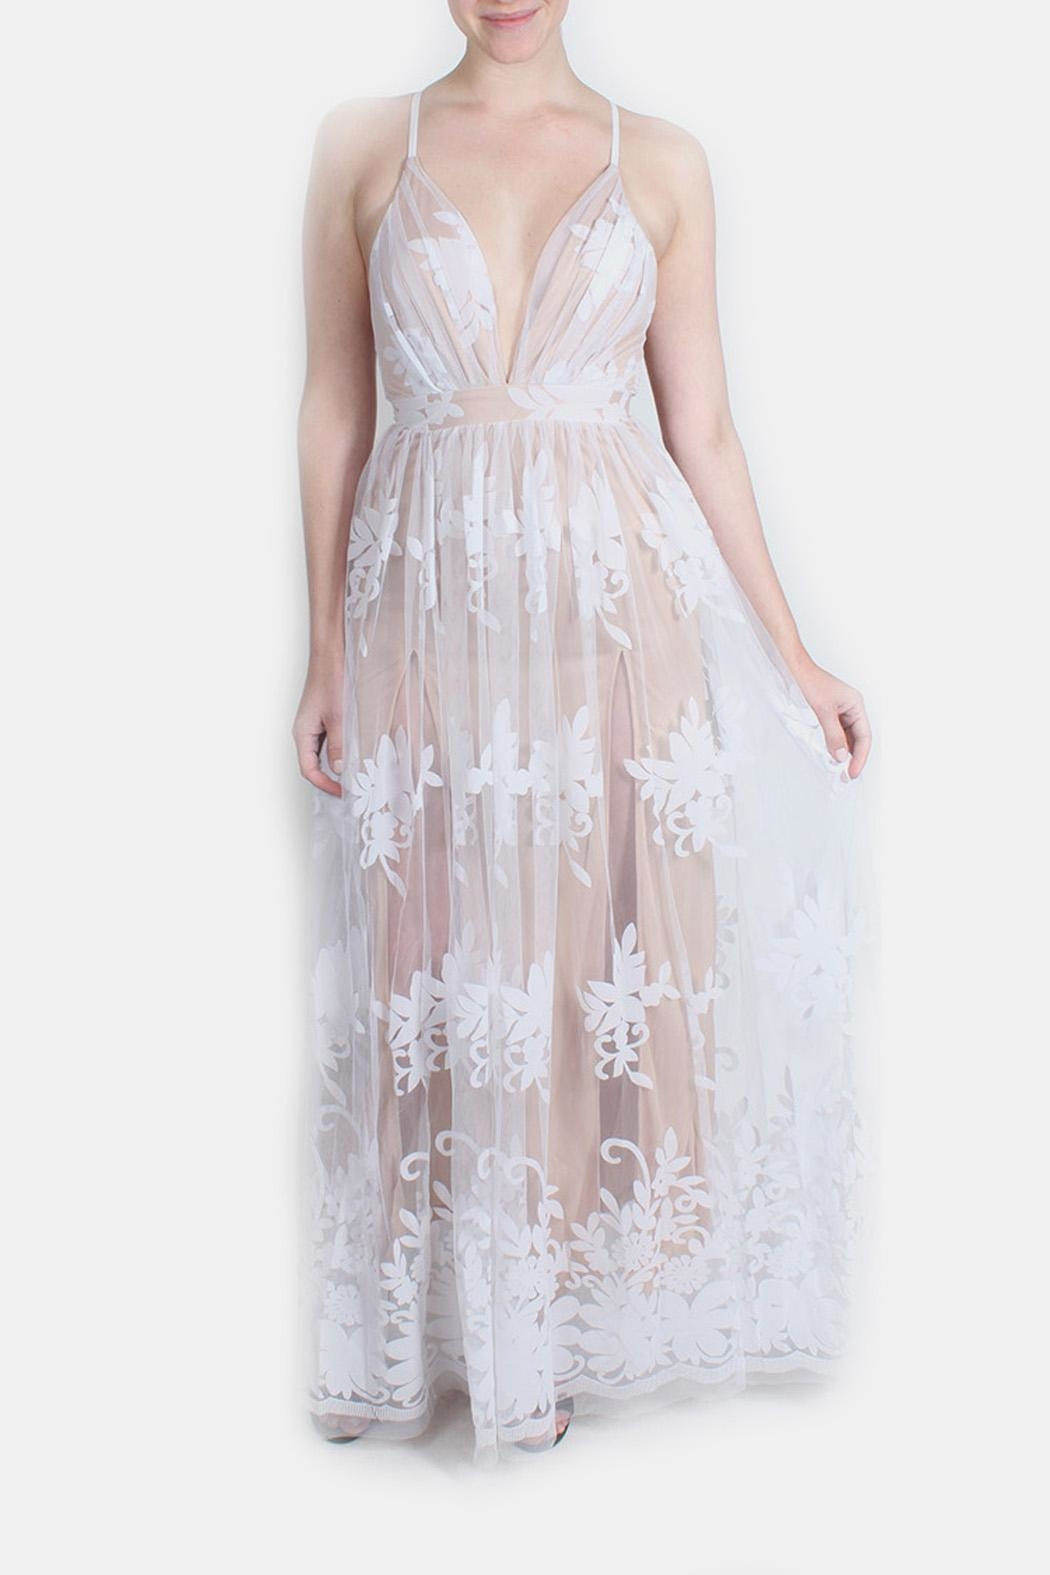 luxxel Nude Monochrome Floral Gown - Main Image